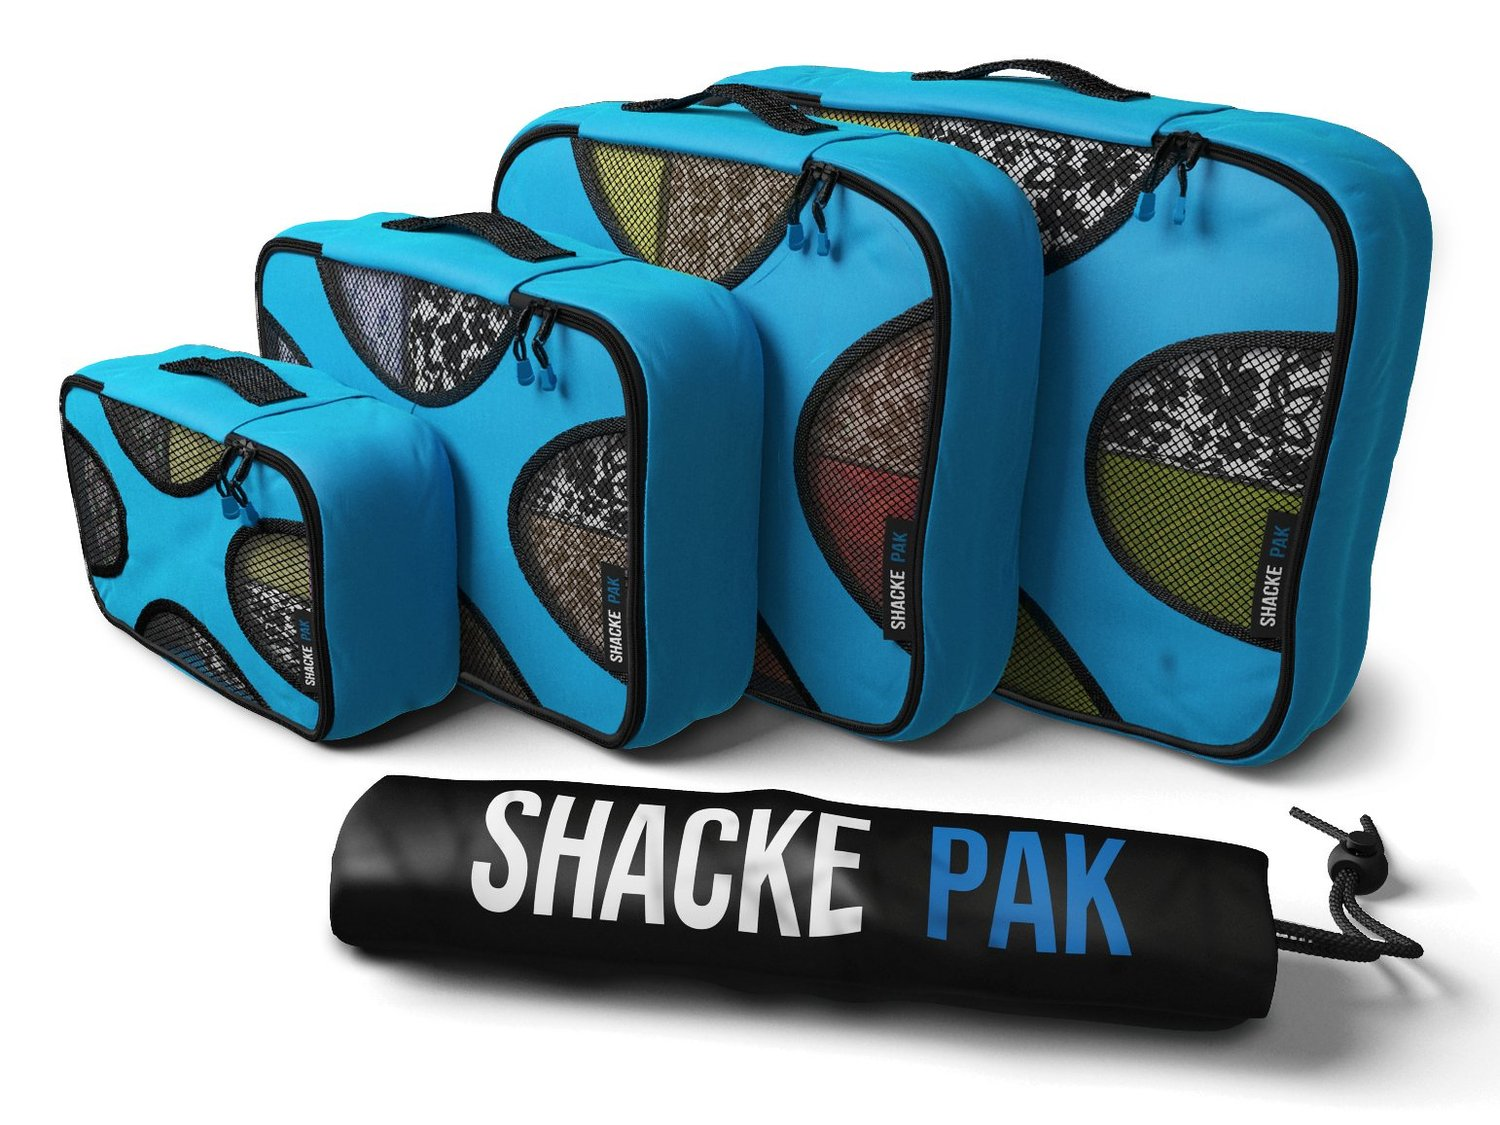 shacke pak - Best packing cubes I have ever used on Amazon